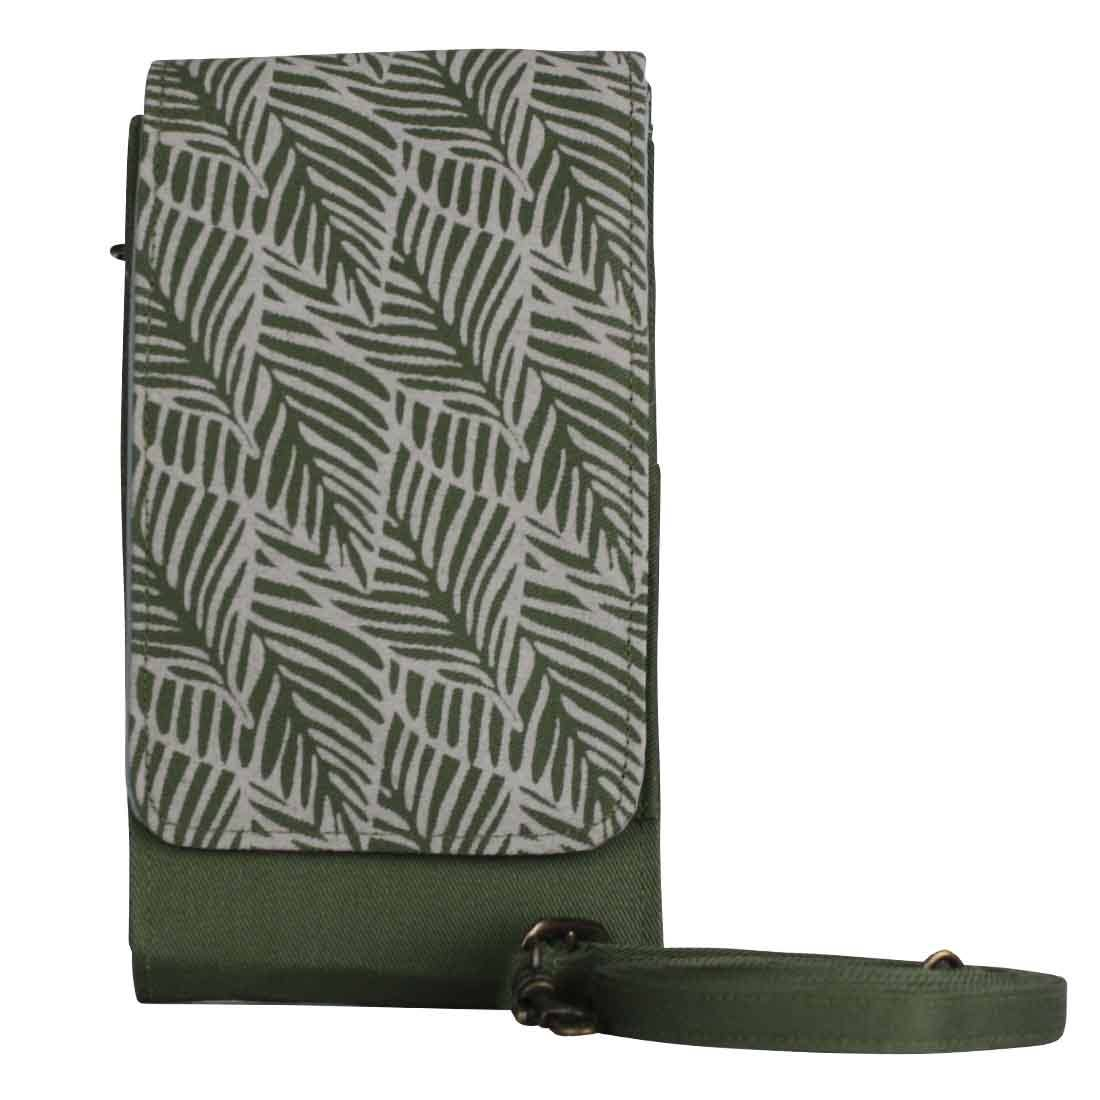 Sustainable Screen Print Phone Case Wallet-Green Blush Leaves (IS)